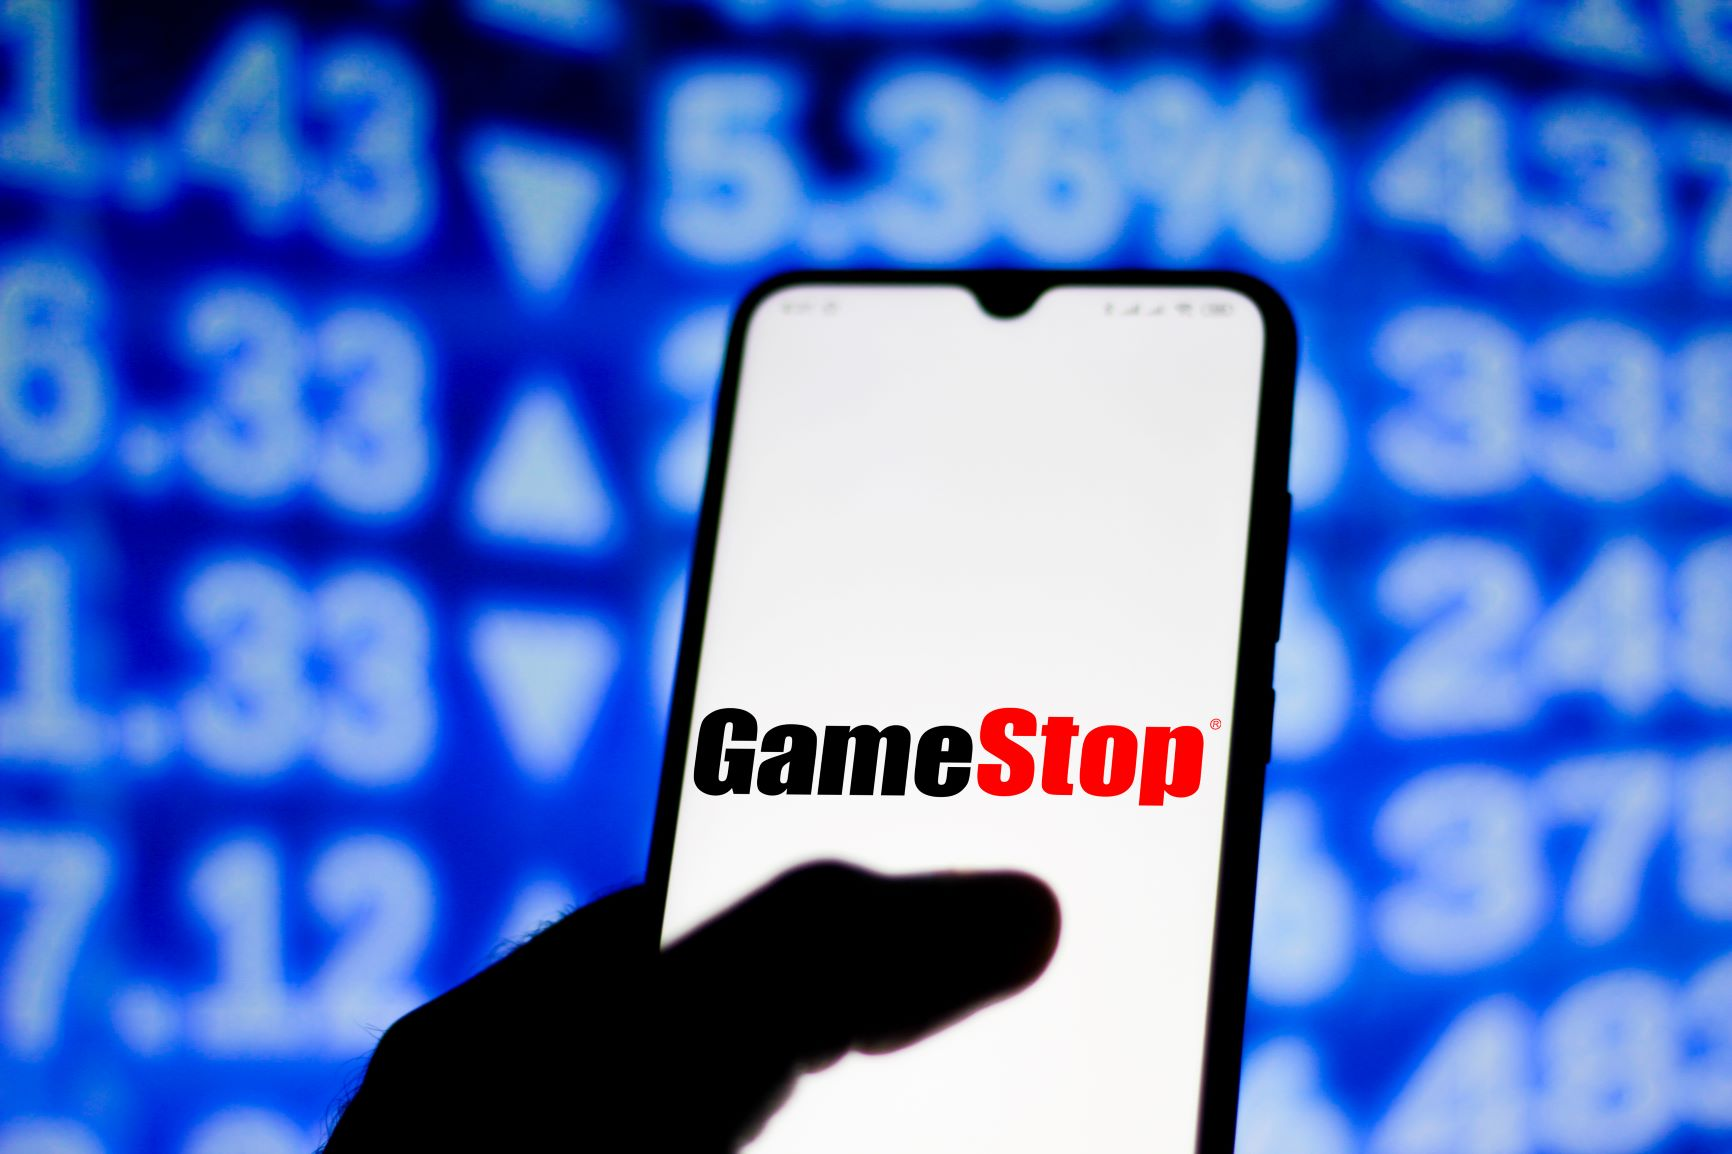 Affaire GameStop : l'incertaine « rébellion contre l'ordre établi »